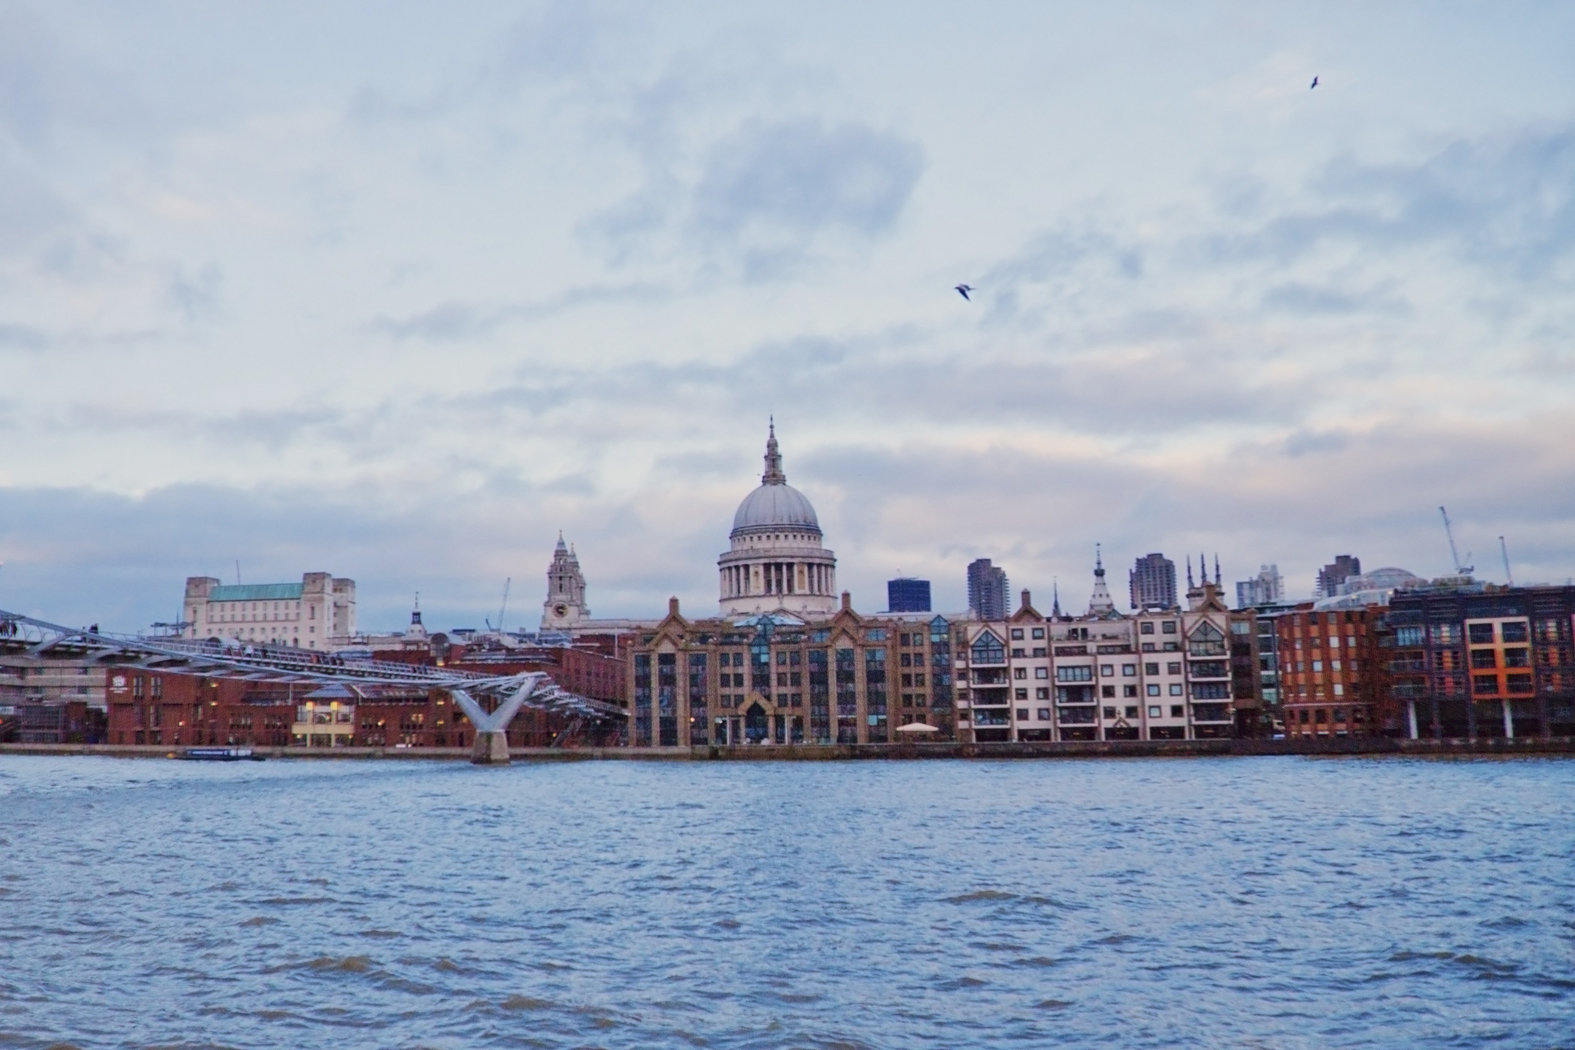 Millennium Bridge + St. Paul's Cathedral popping up over some buildings